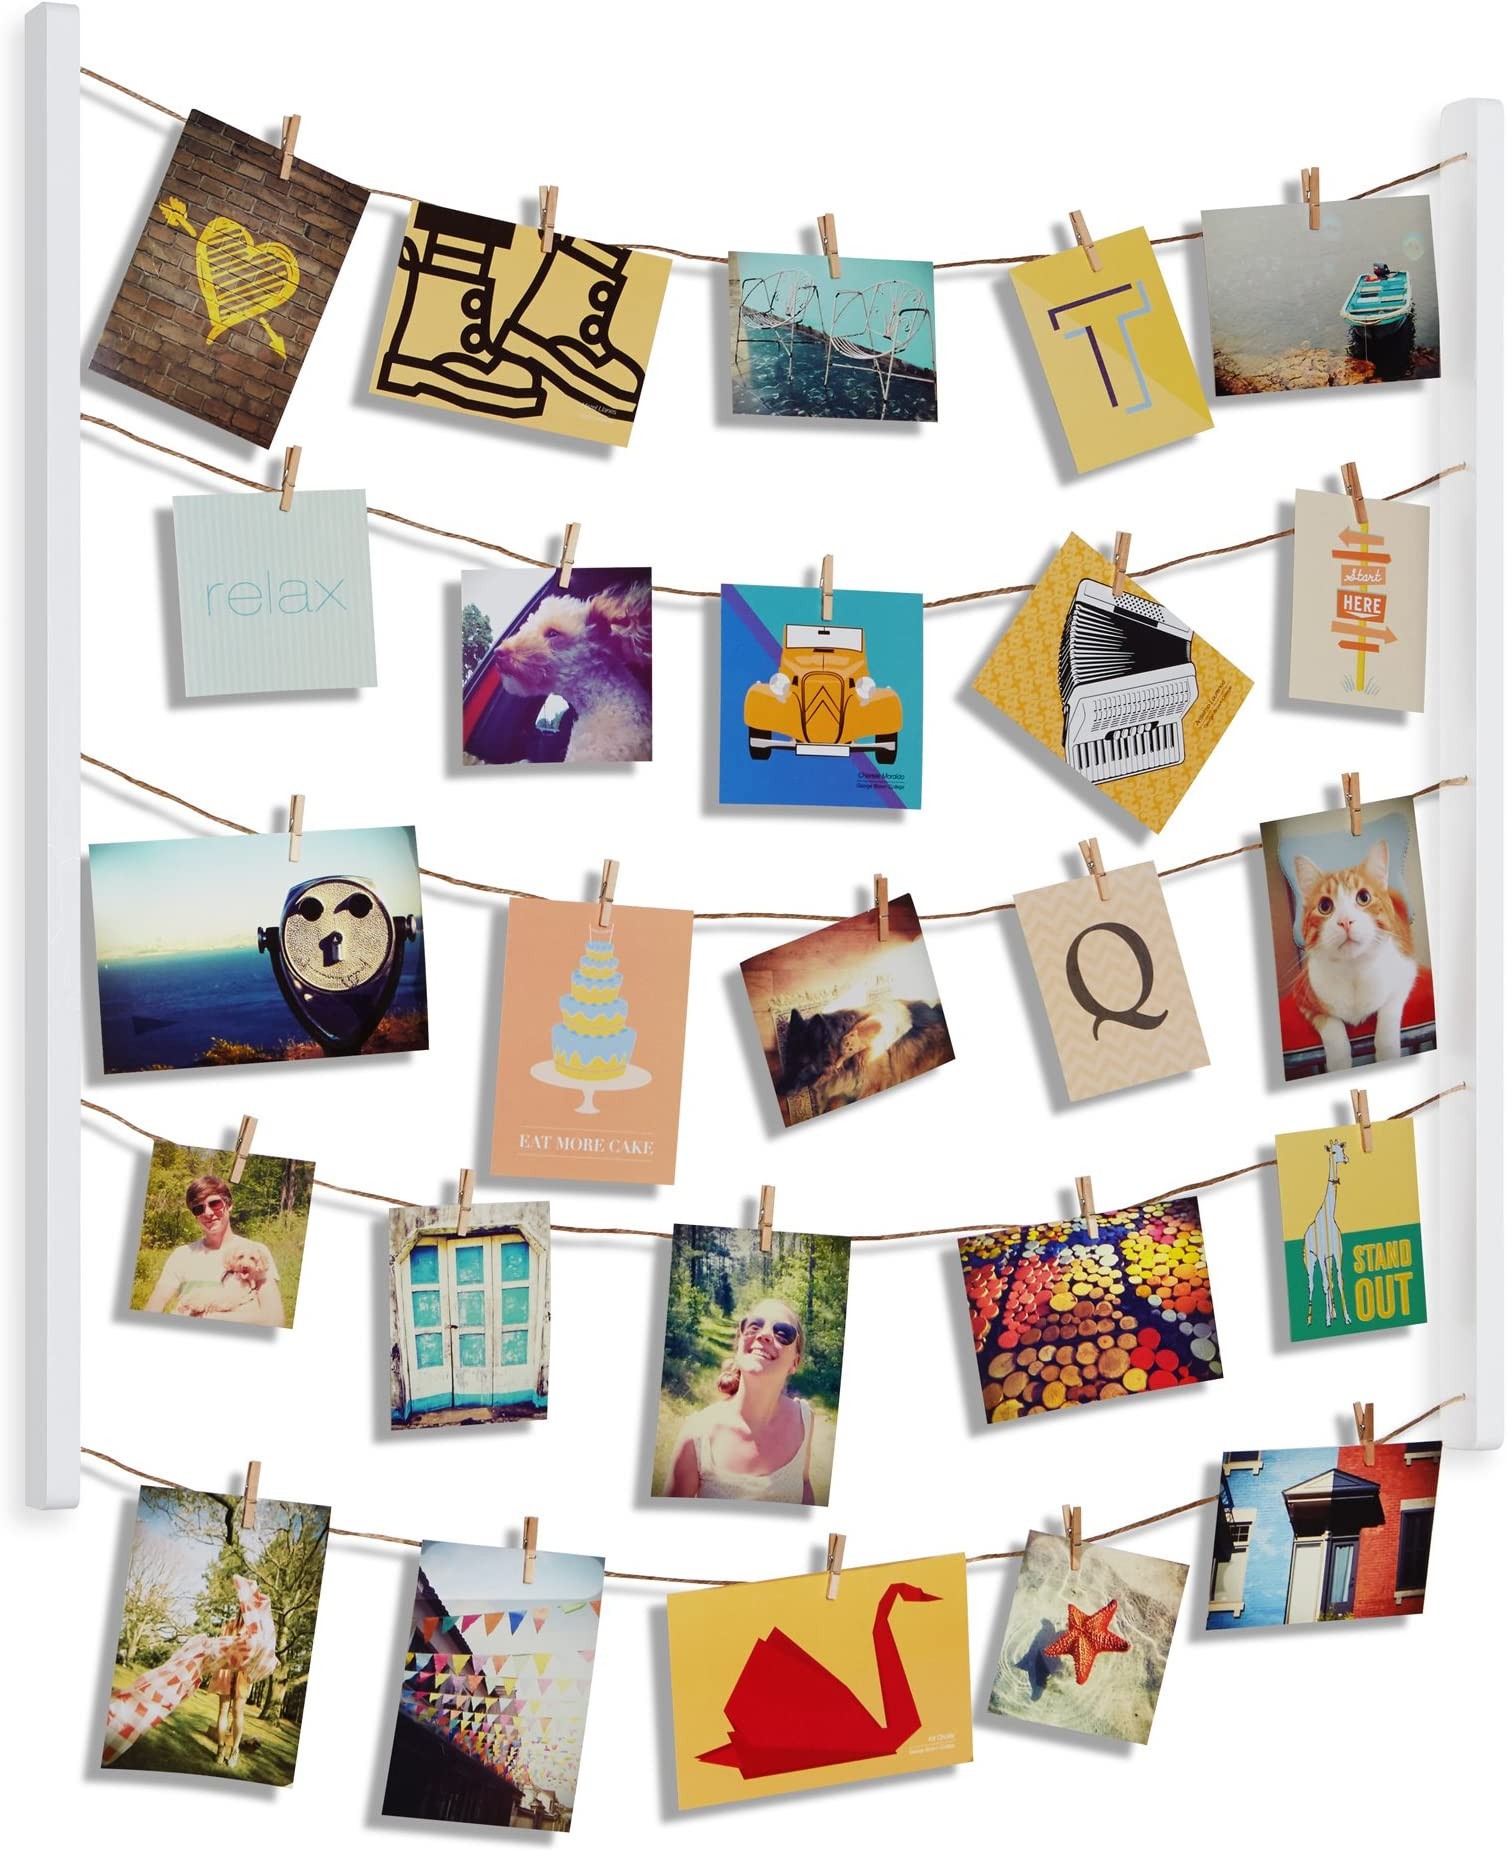 shop amazon com clip photo holdersumbra hangit photo display diy picture frames collage set includes picture hanging wire twine cords